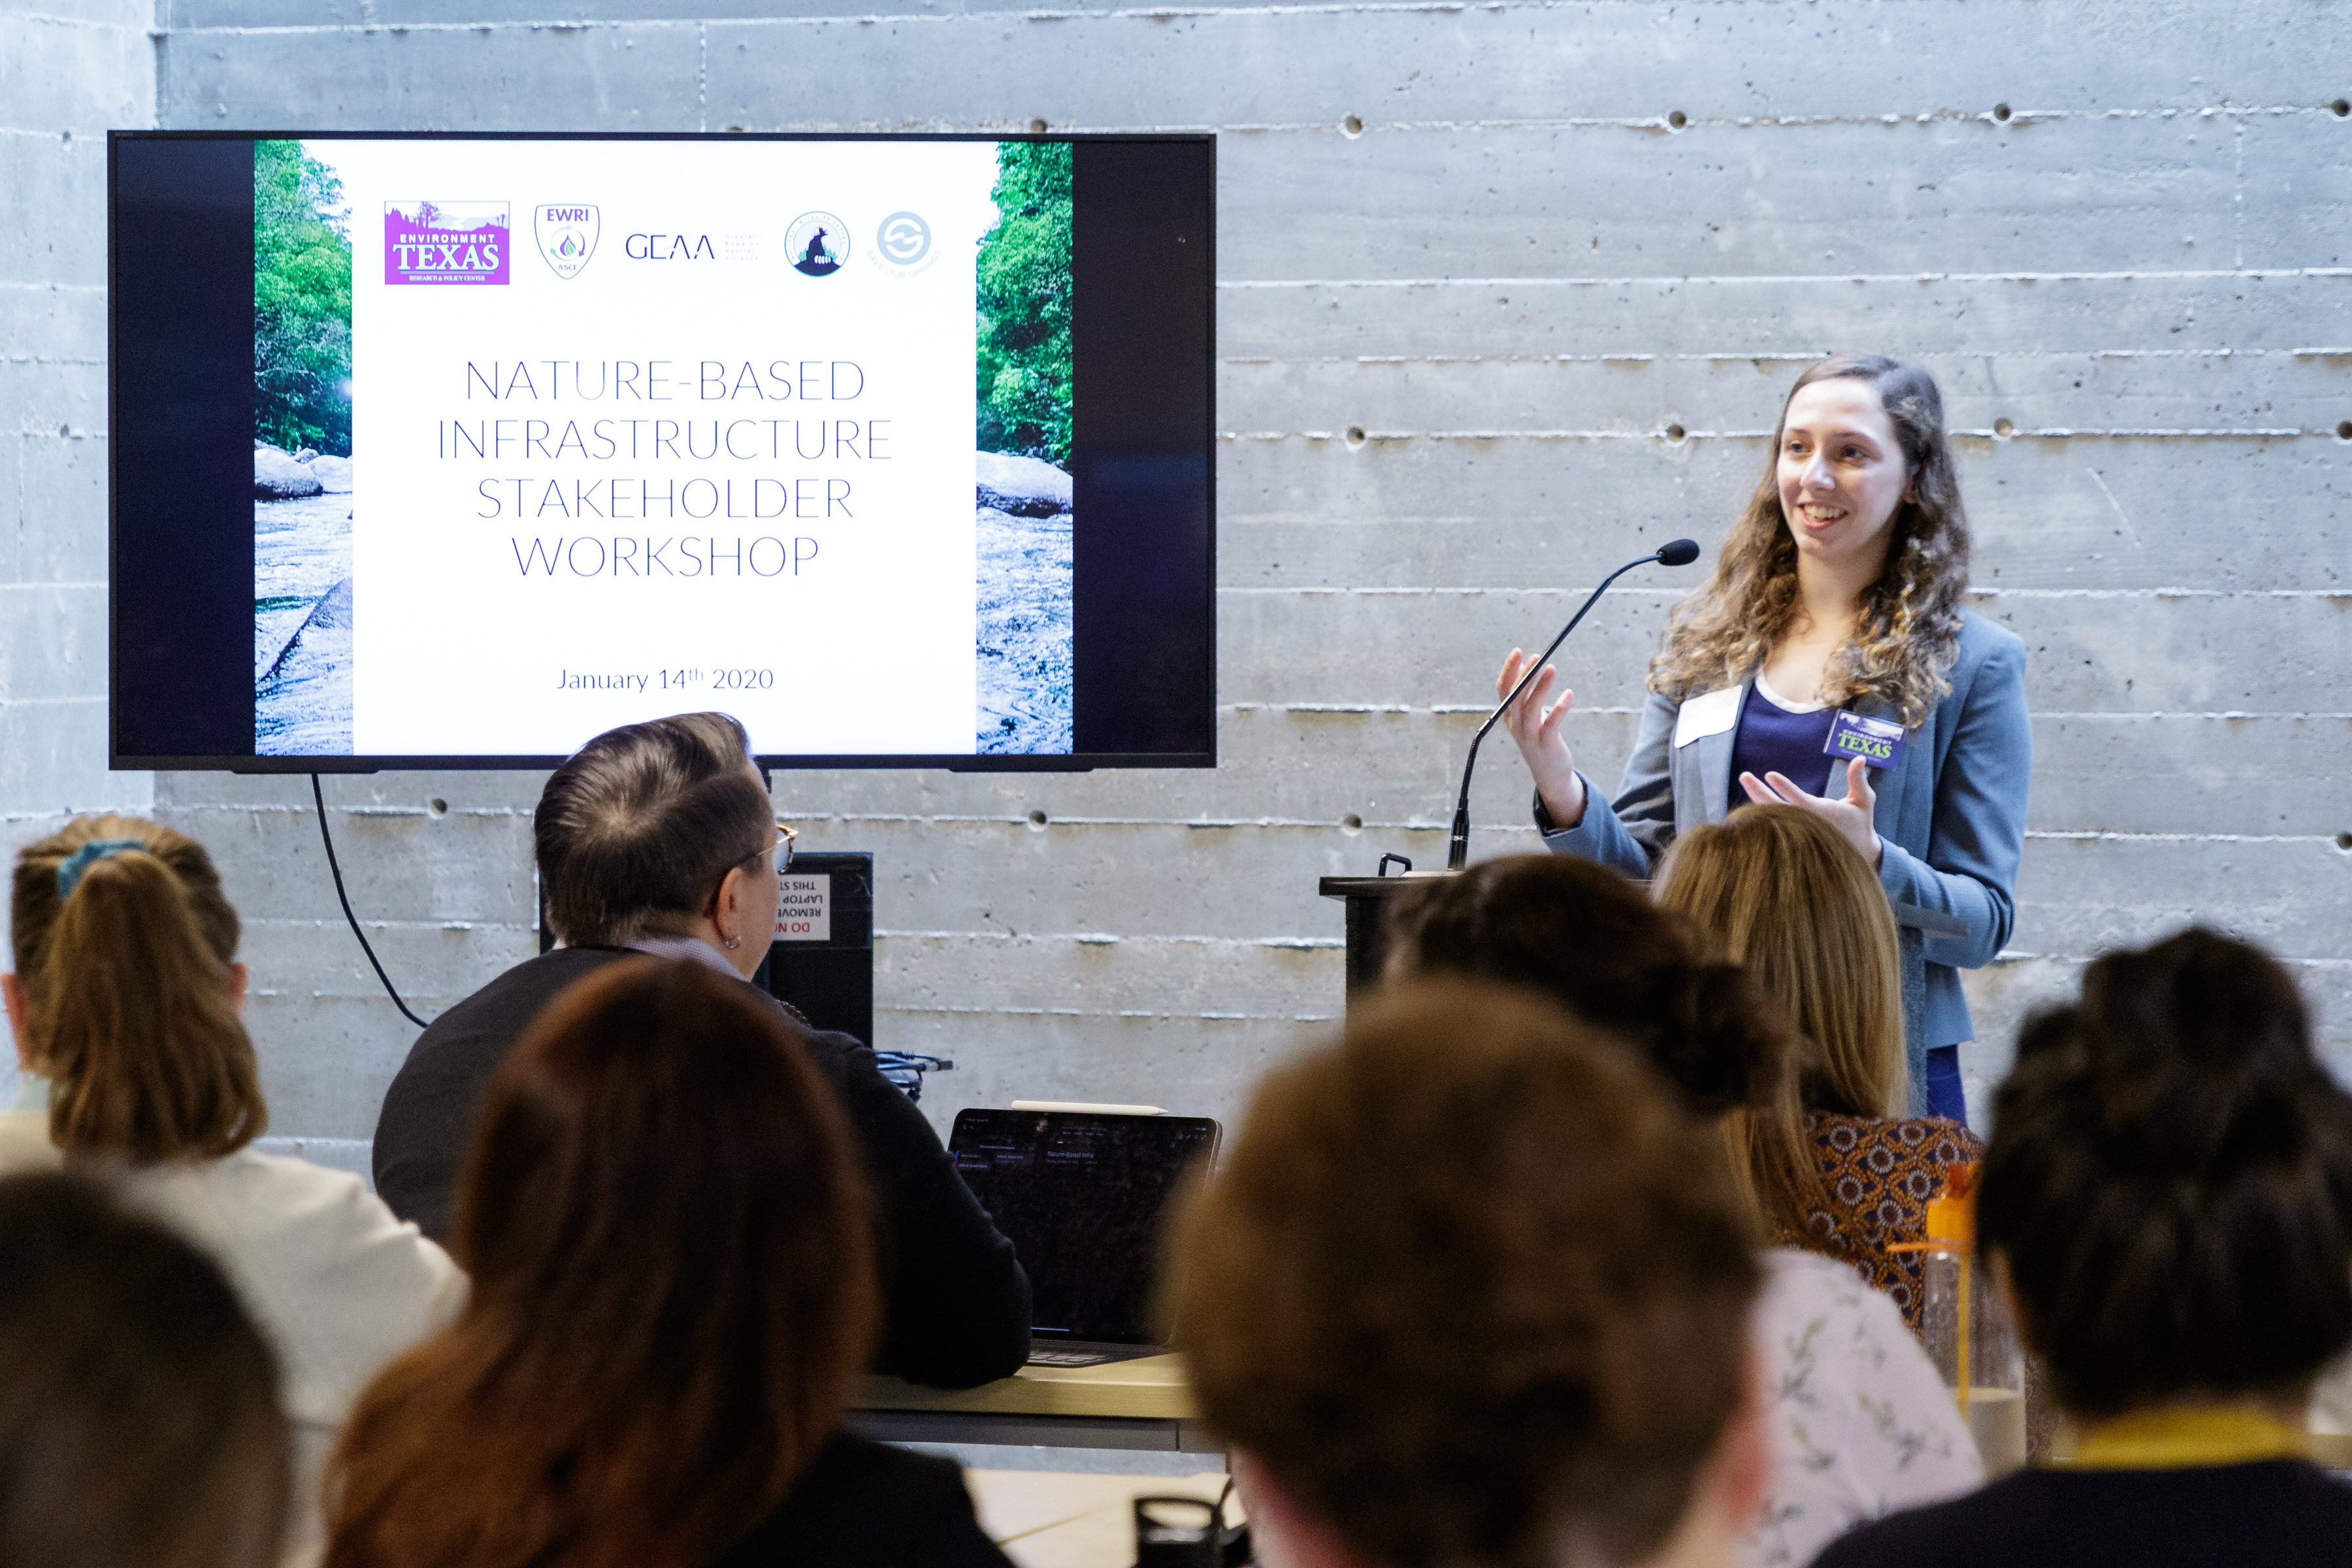 Clean Water Associate Anna presenting at a nature-based infrasrtucture conference